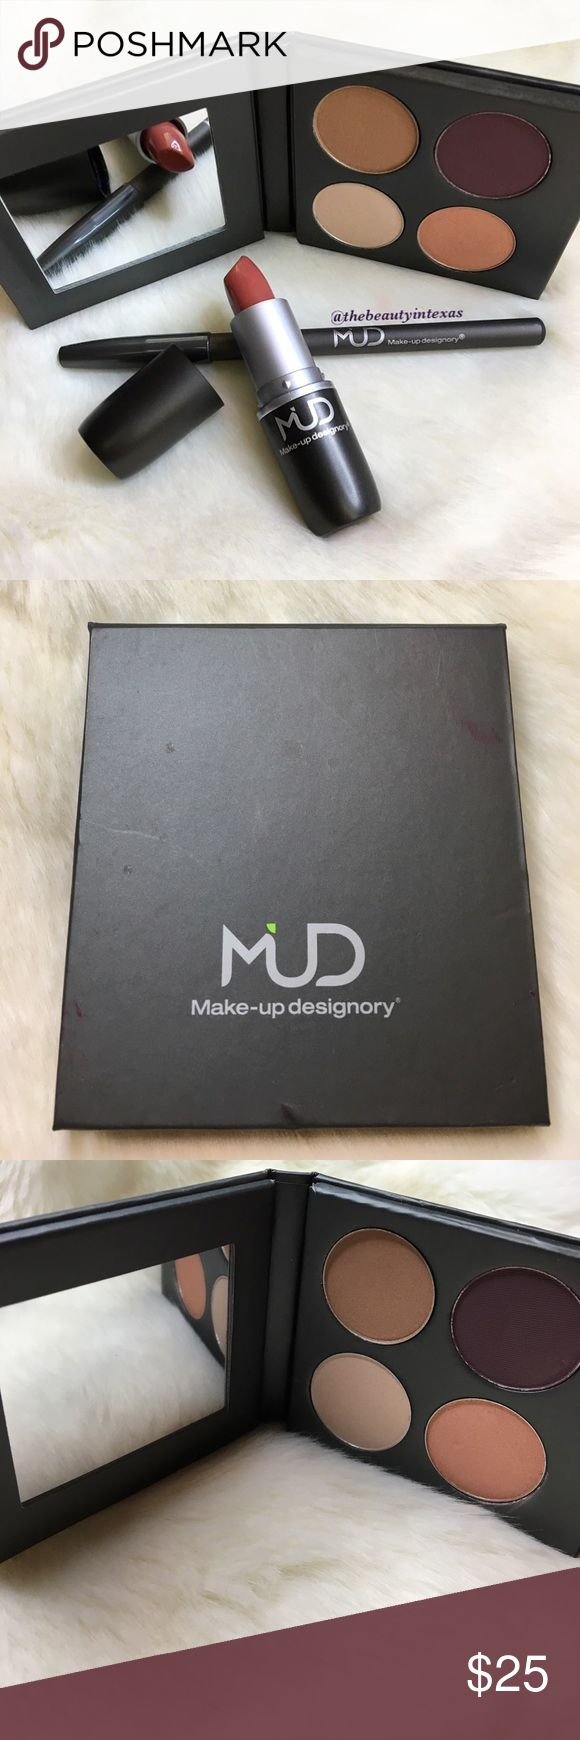 ✨MUD cosmetics eyeshadow palette✨ MUD cosmetics eyeshadow palette is most definitely a one of a kind eyeshadow palette. The colors not only compliment each other but are so rich with pigment! Paring these together give the perfect look! MUD Cosmetics Makeup Eyeshadow